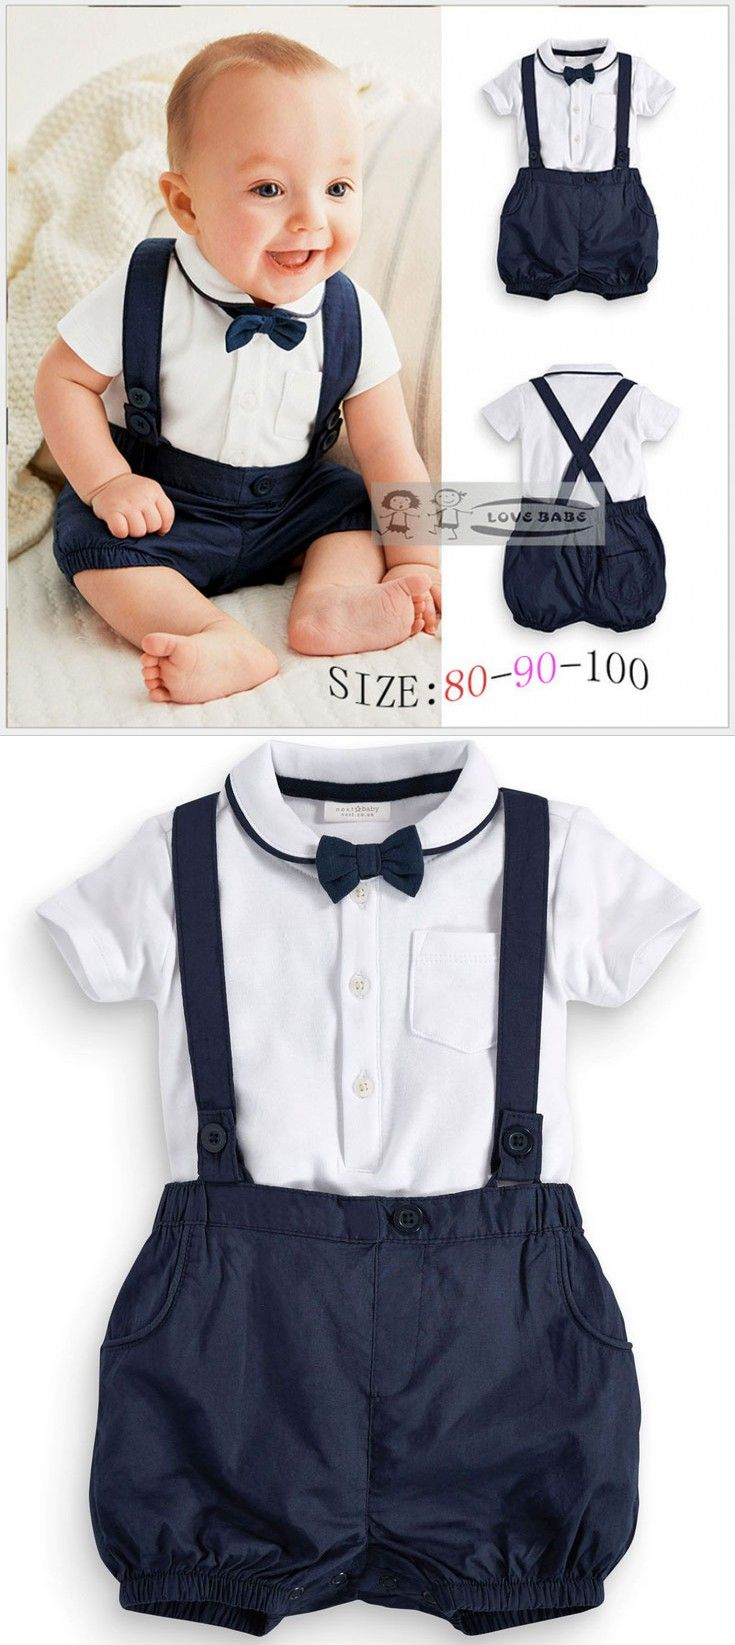 adf620ecab8d Summer Baby Clothing Cotton 2pcs Suit Short Infant Boy Gentleman ...